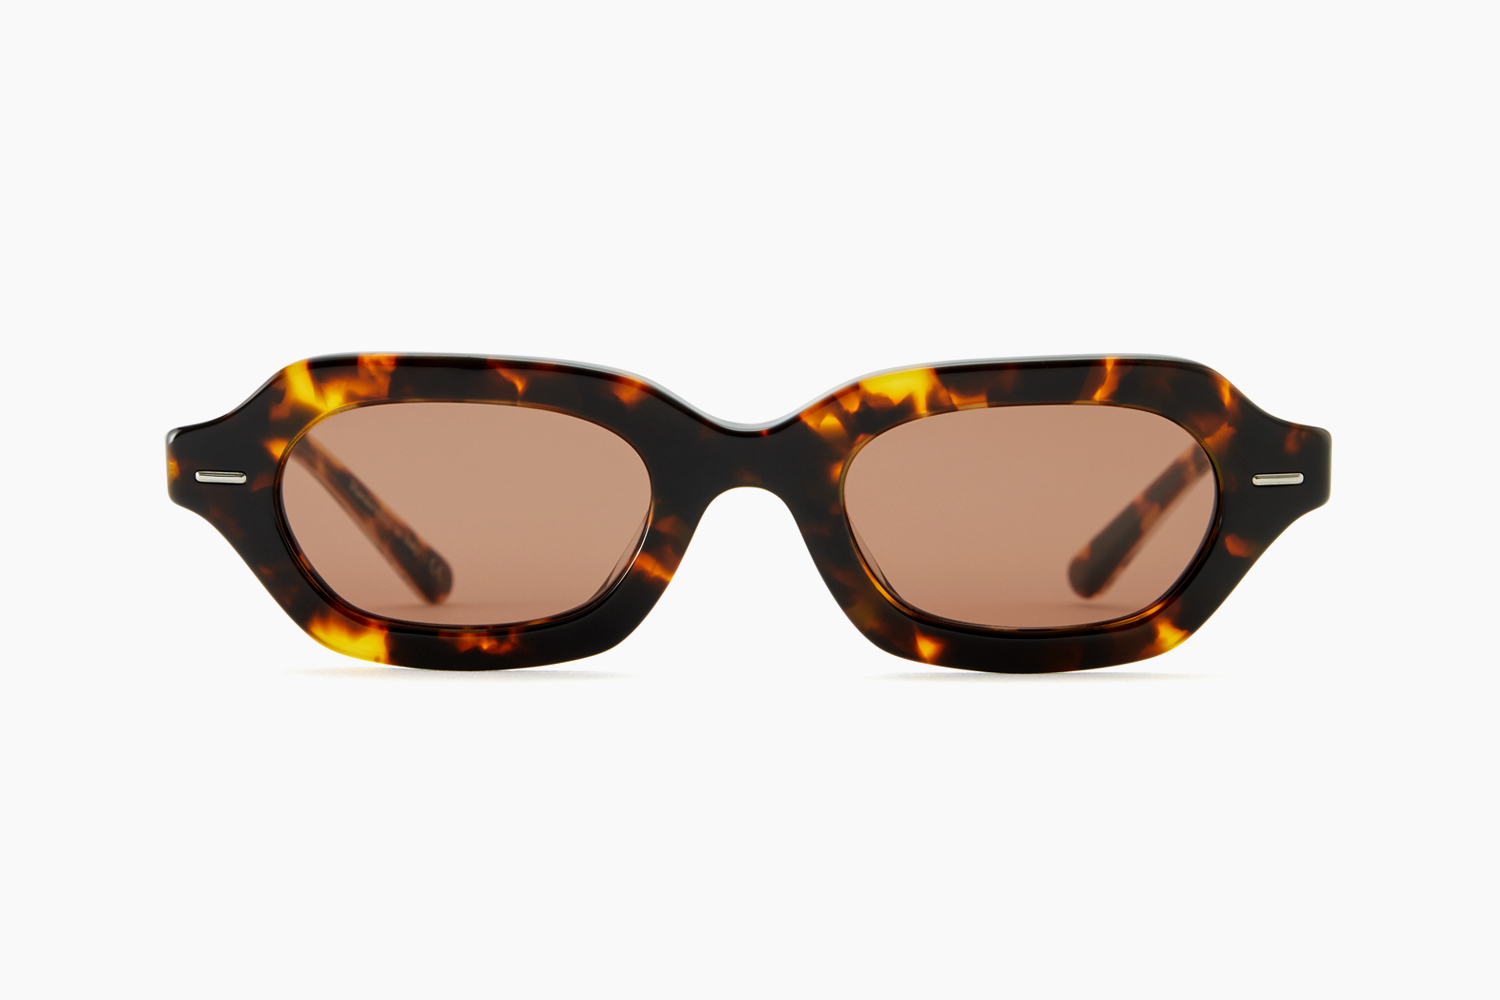 OLIVER PEOPLES THE ROW|L.A. CC – 1663C5|OLIVER PEOPLES